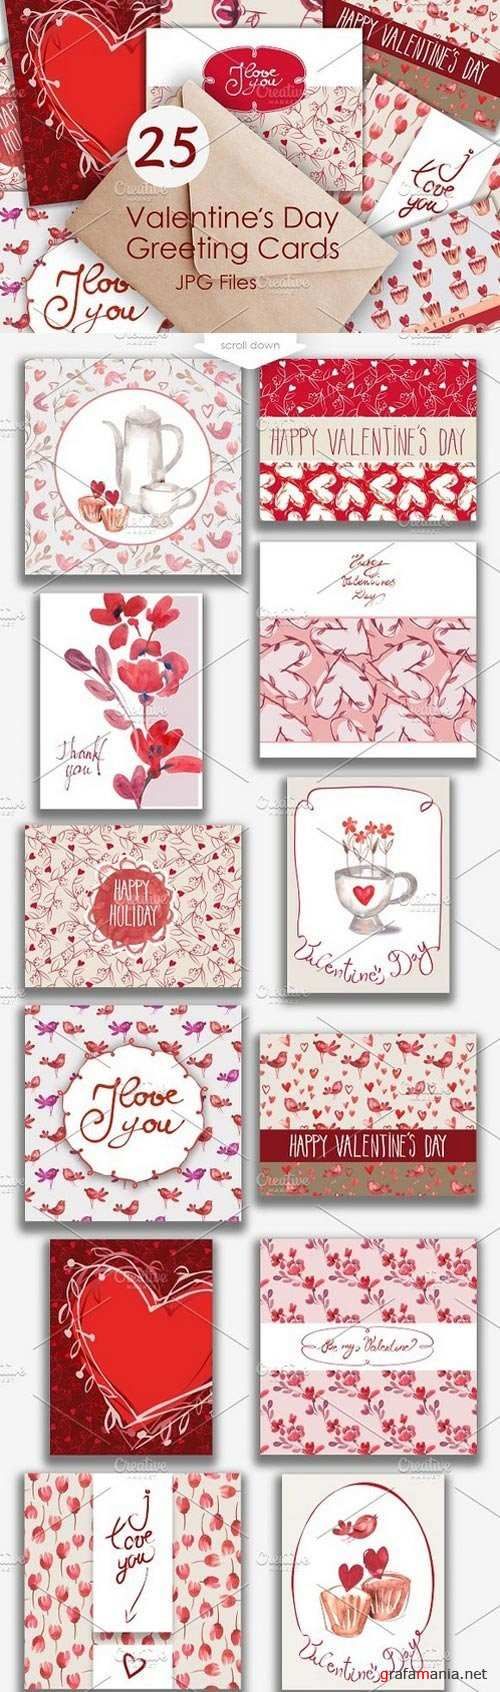 25 Valentines Day Greeting Card - 1049506